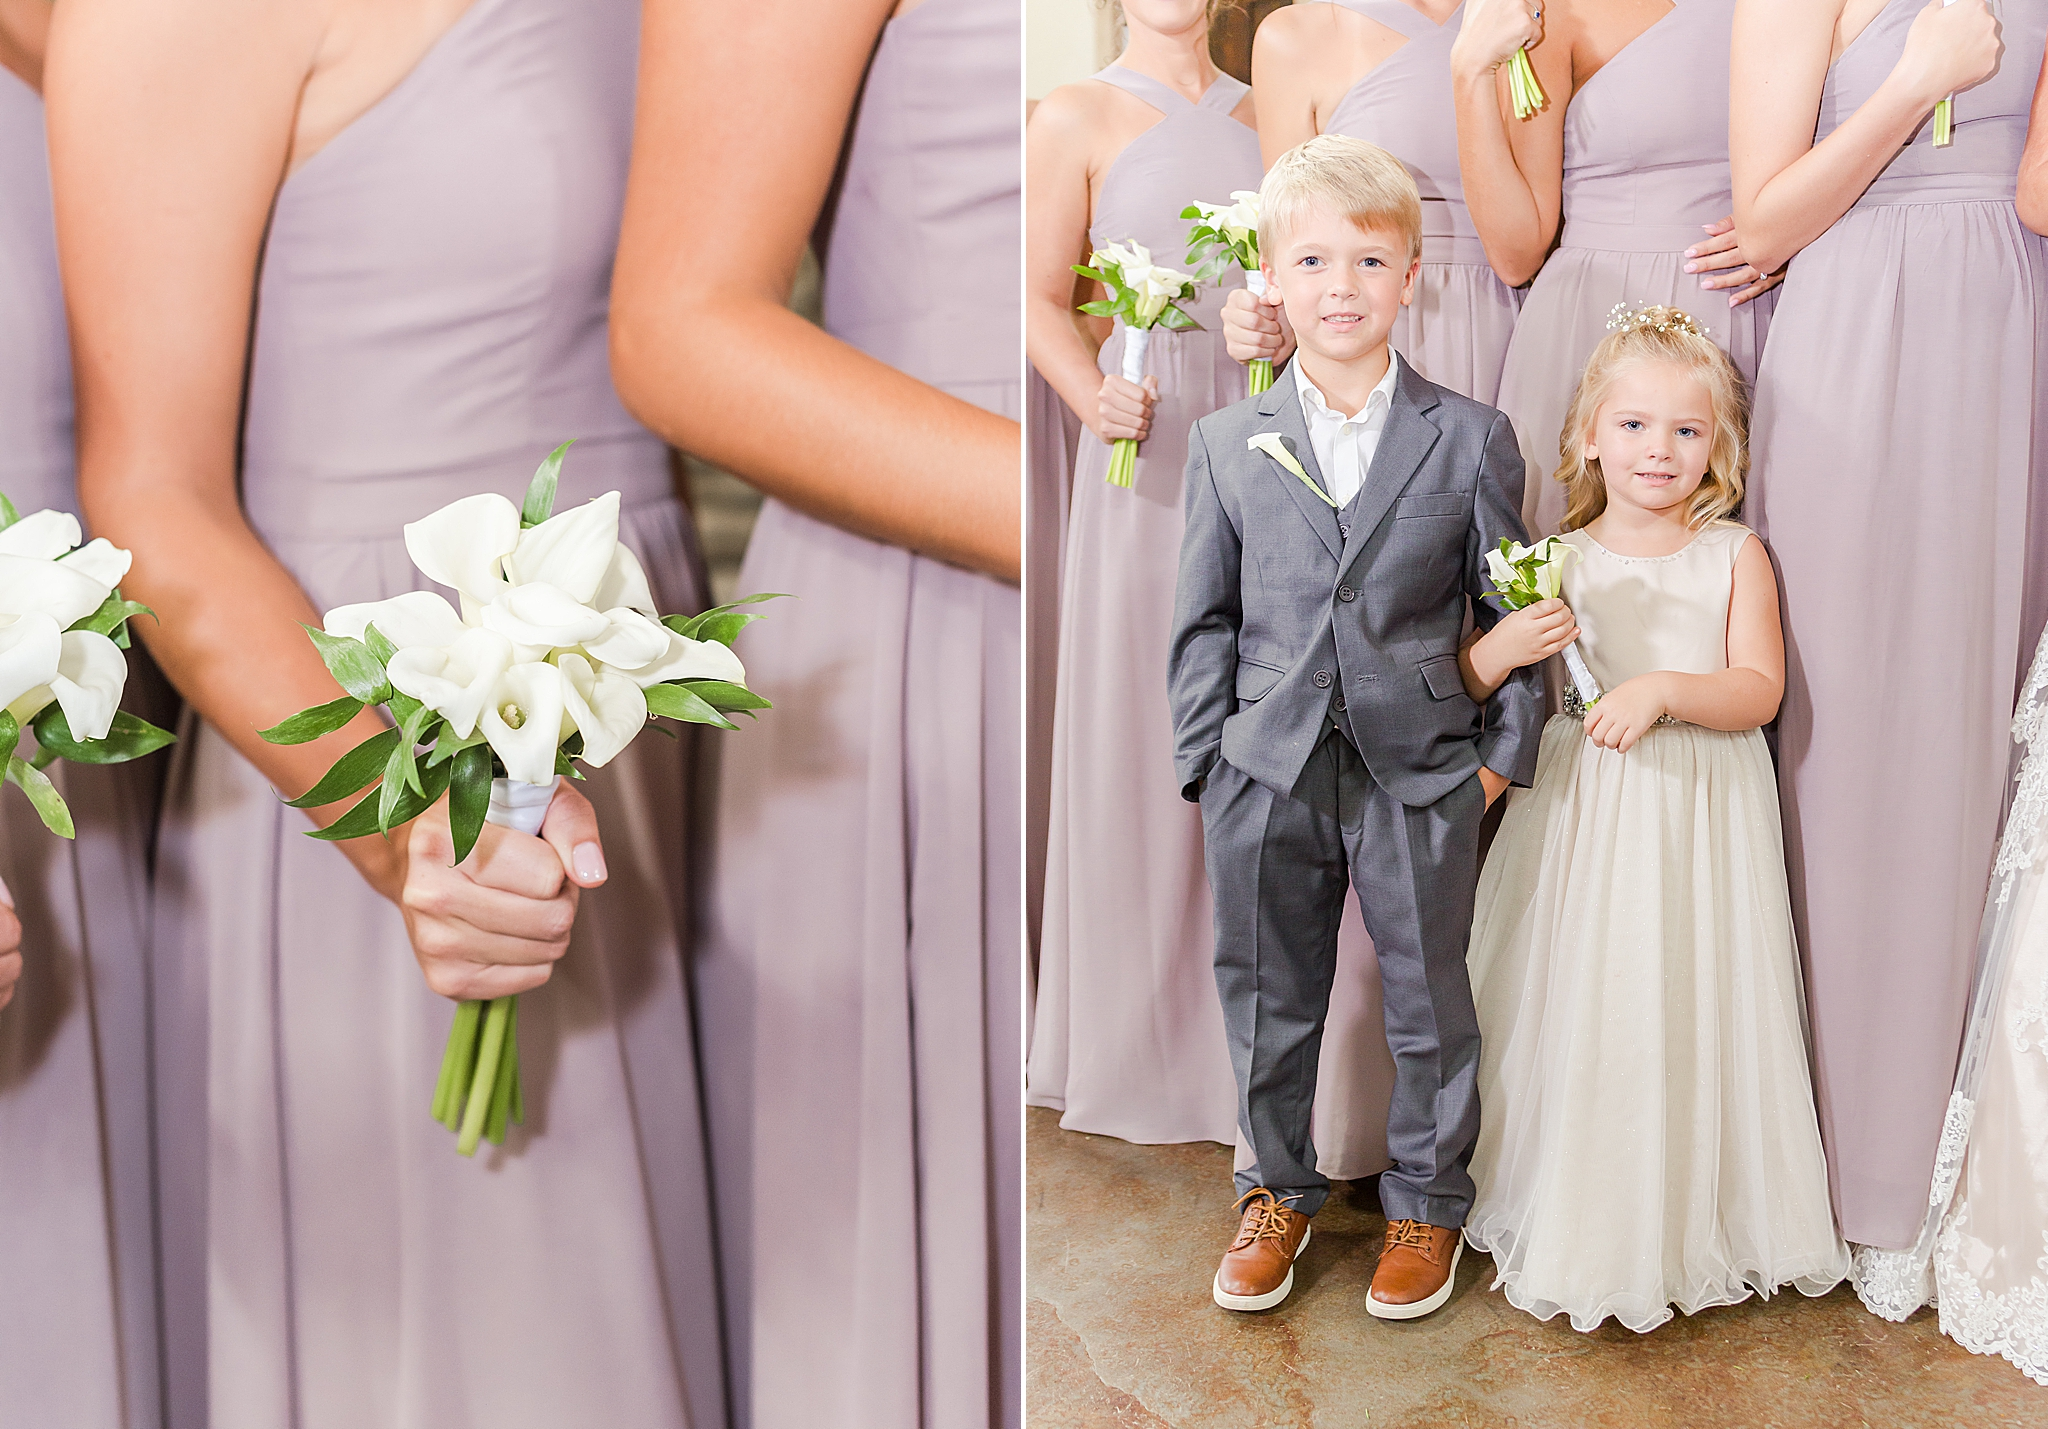 bridal party poses by stone fireplace at Izenstone